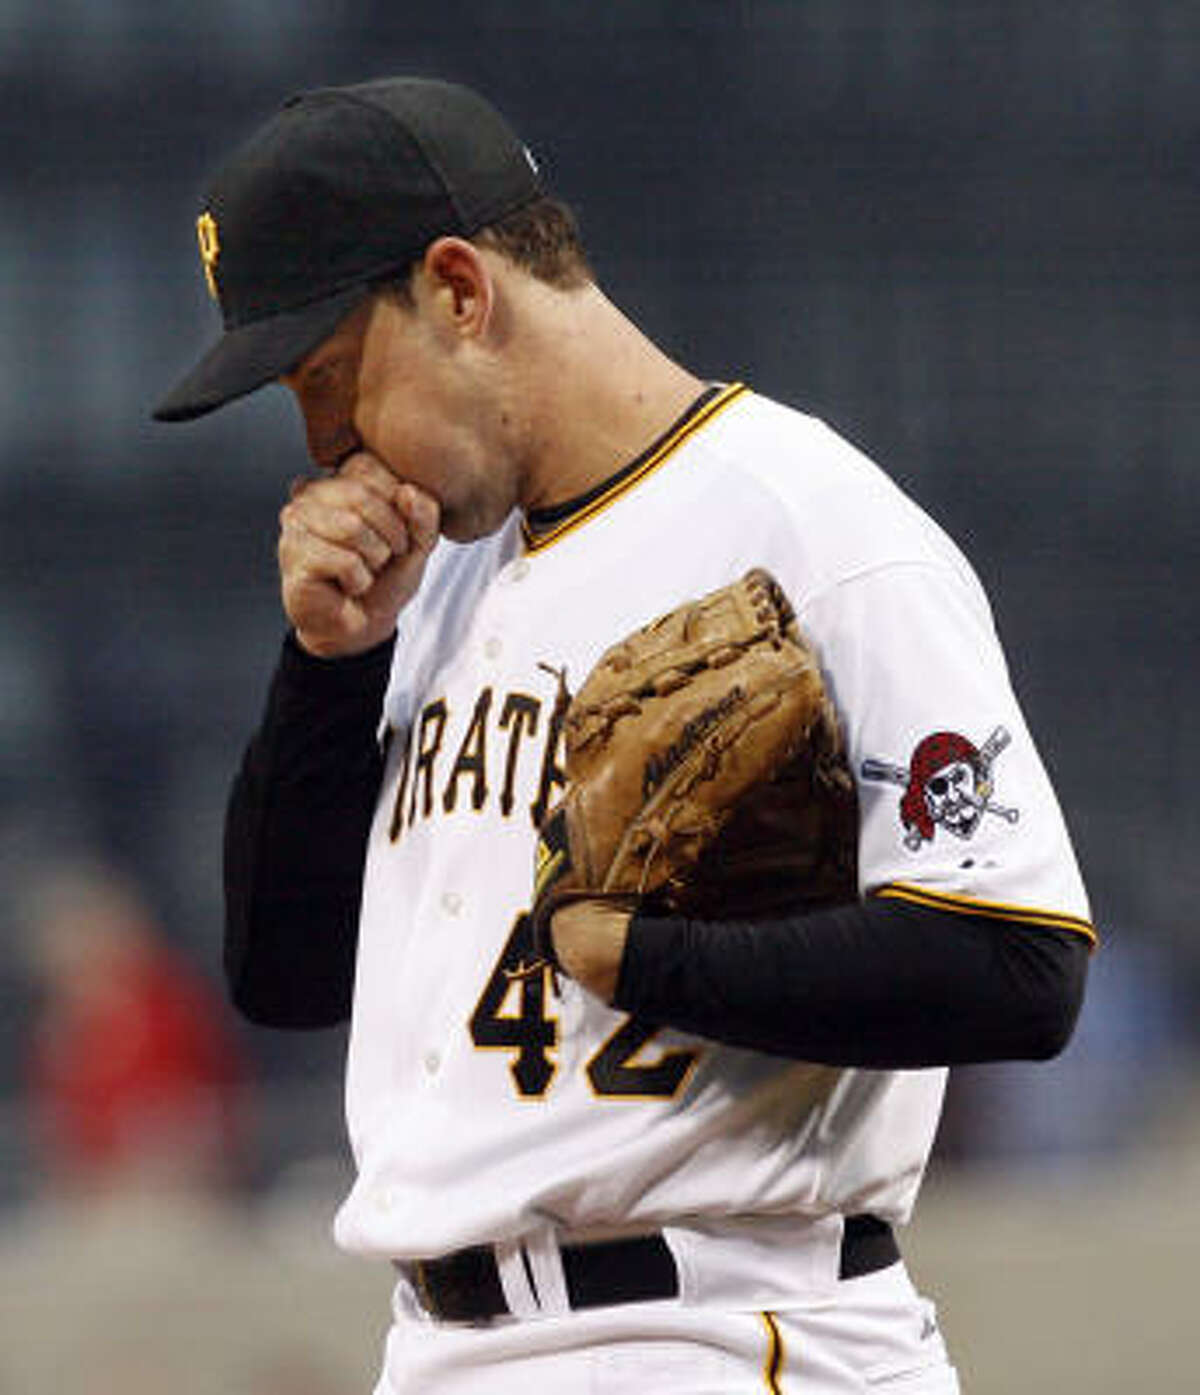 Pittsburgh Pirates starting pitcher Ross Ohlendorf blows on his hands after giving up two runs to the Houston Astros in the first inning.